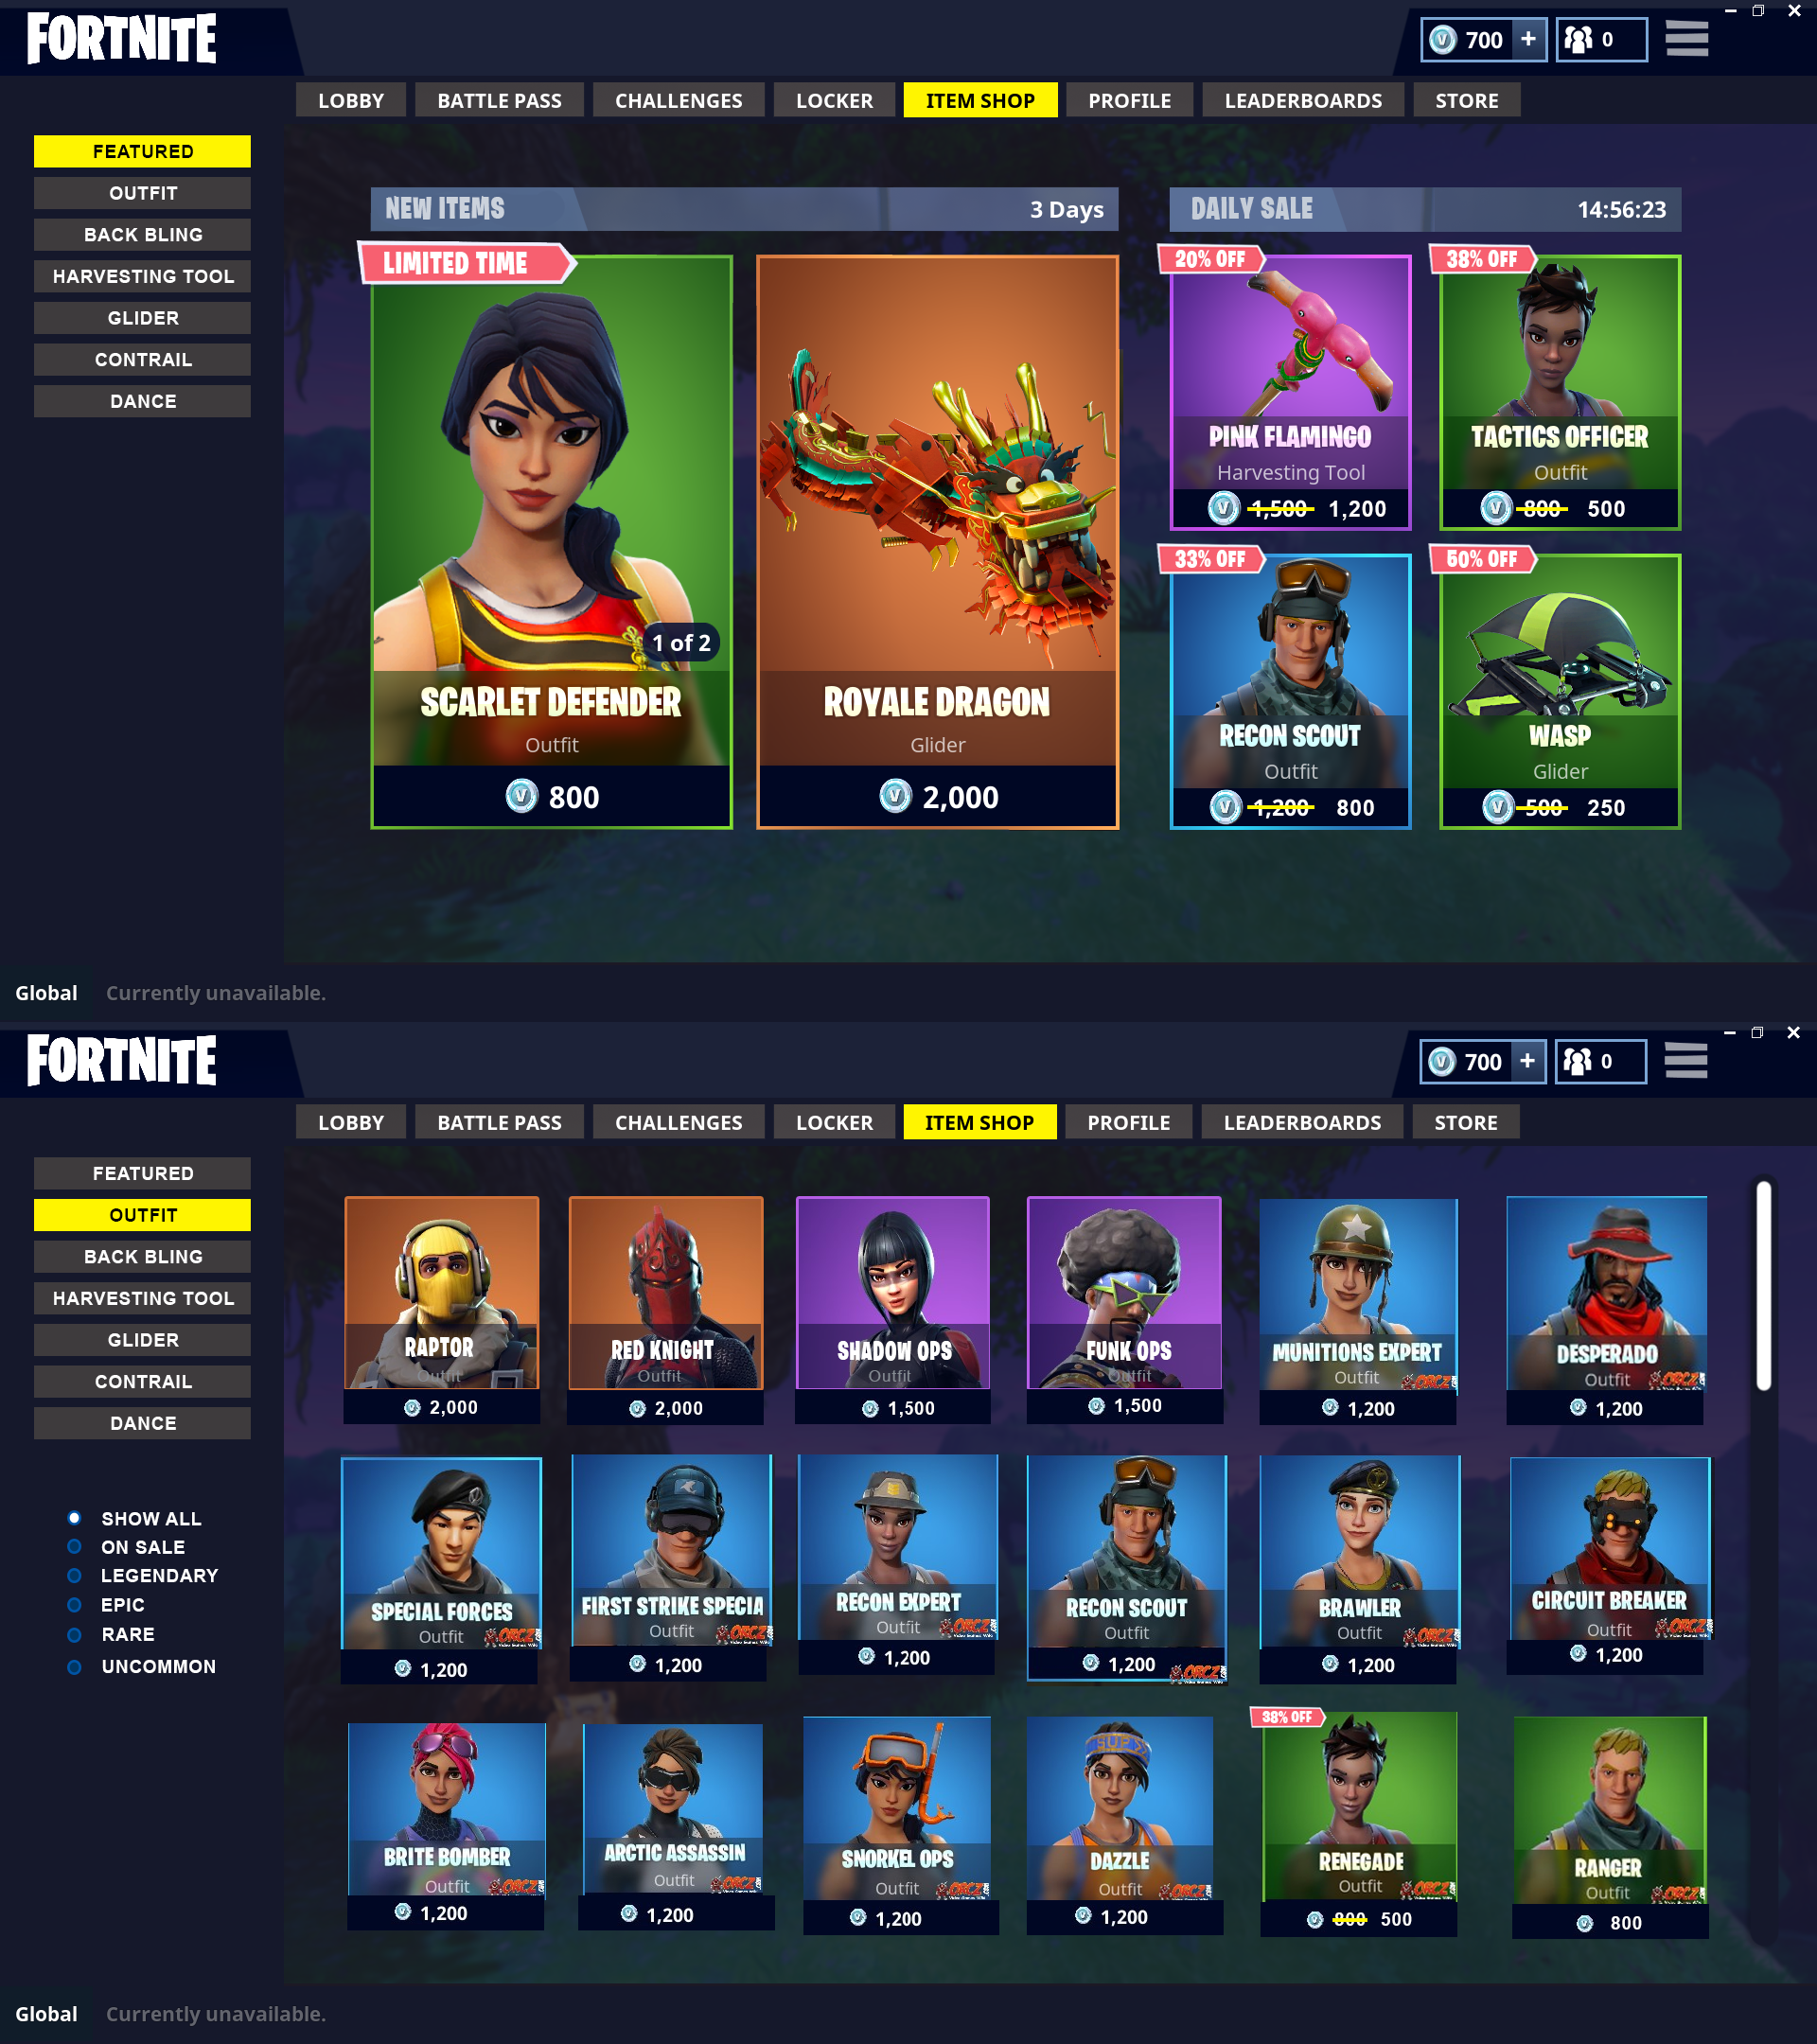 Permanent Shop for Non-Seasonal Skins and Daily Sales ...